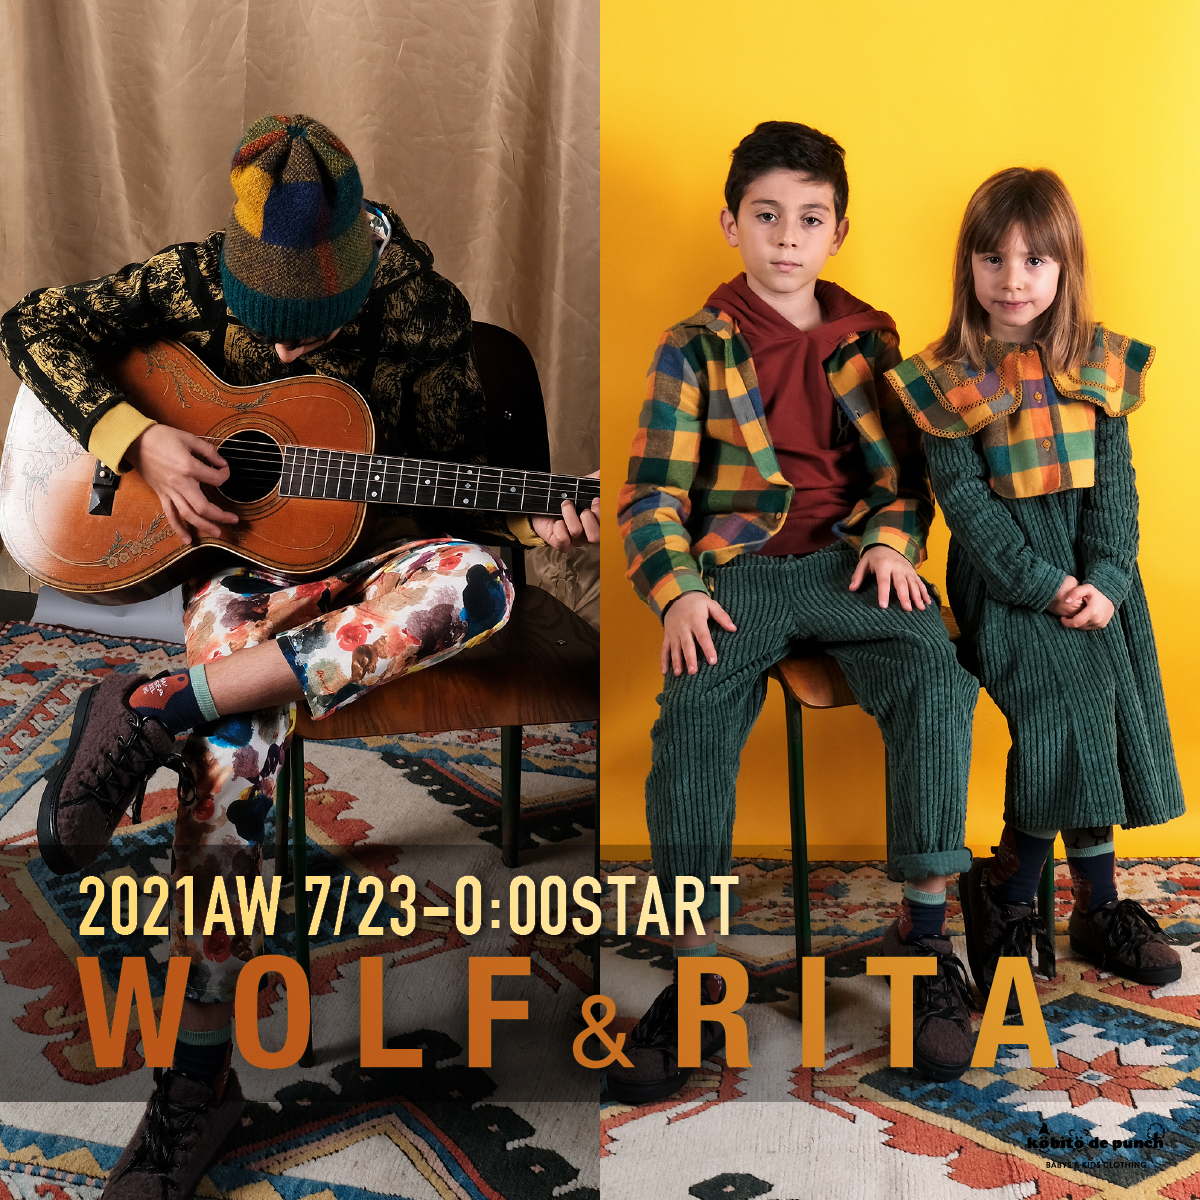 WOLF&RITA 21AWスタート!【AVALANCH OF THE YOUNG】